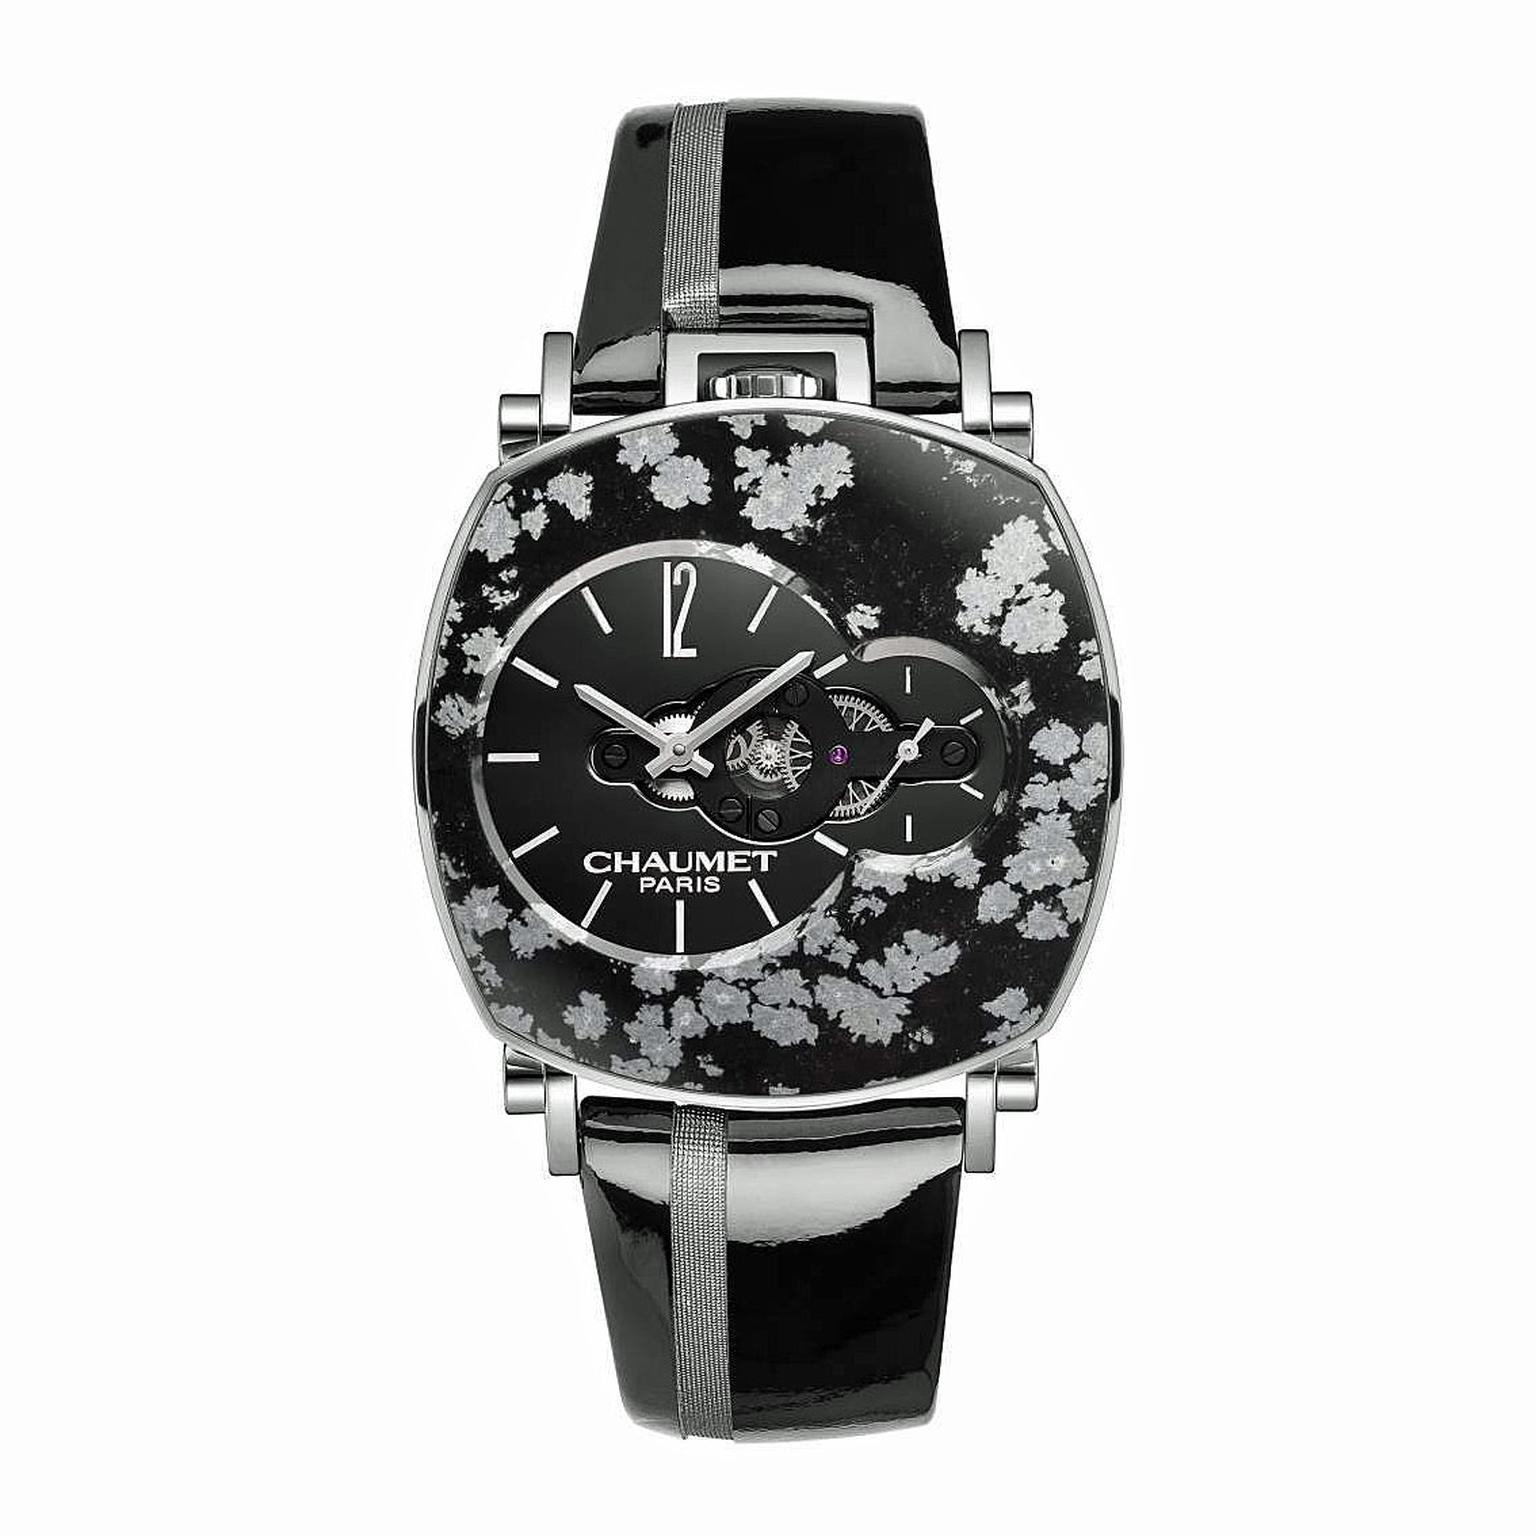 Chaumet Dandy Arty Open Face watch